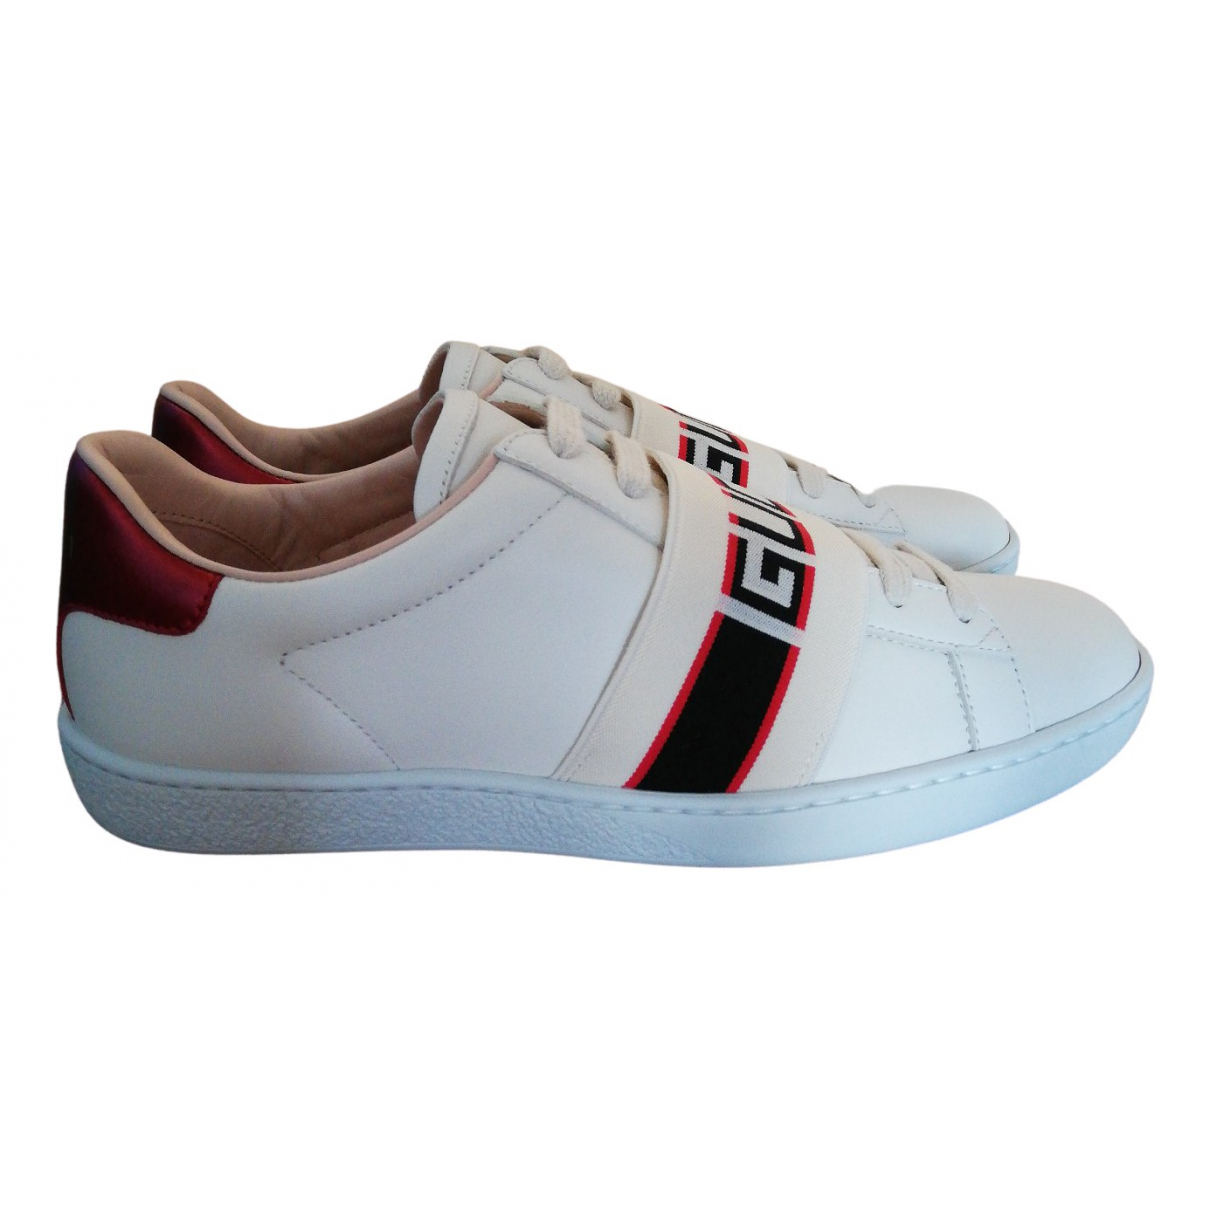 Gucci \N Beige Leather Trainers for Women 38 EU